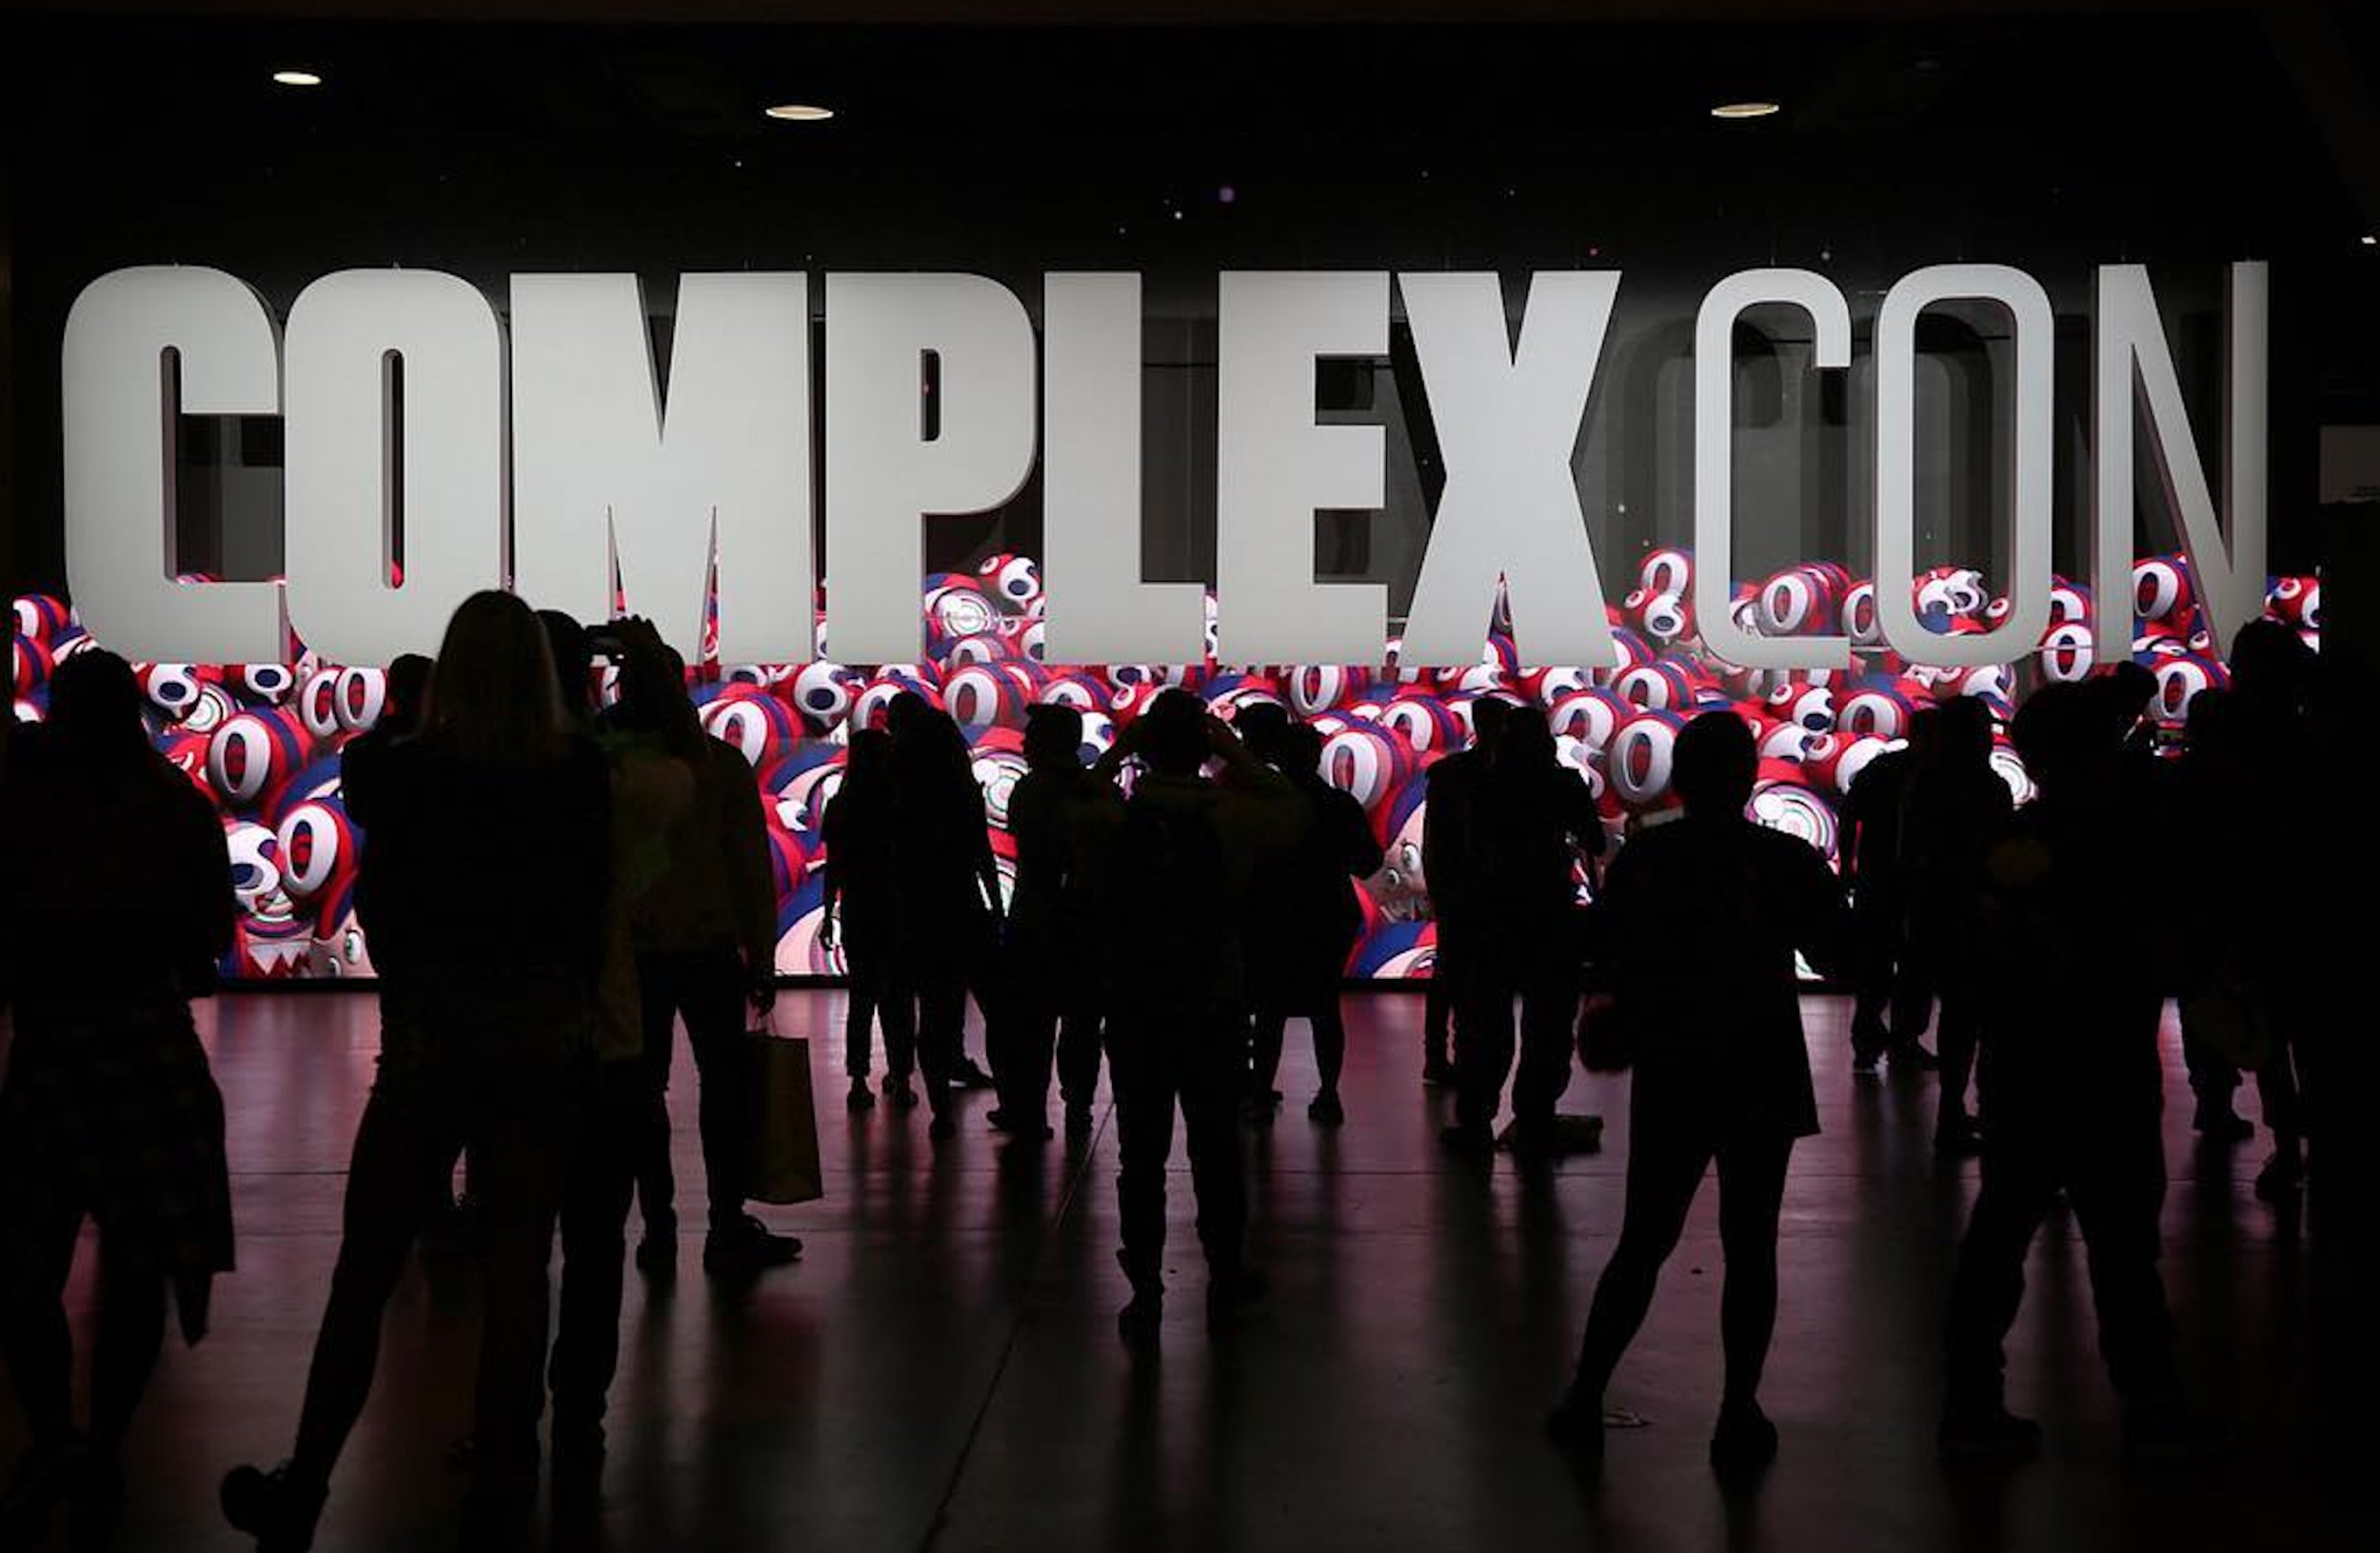 complexcon sign for complex networks story